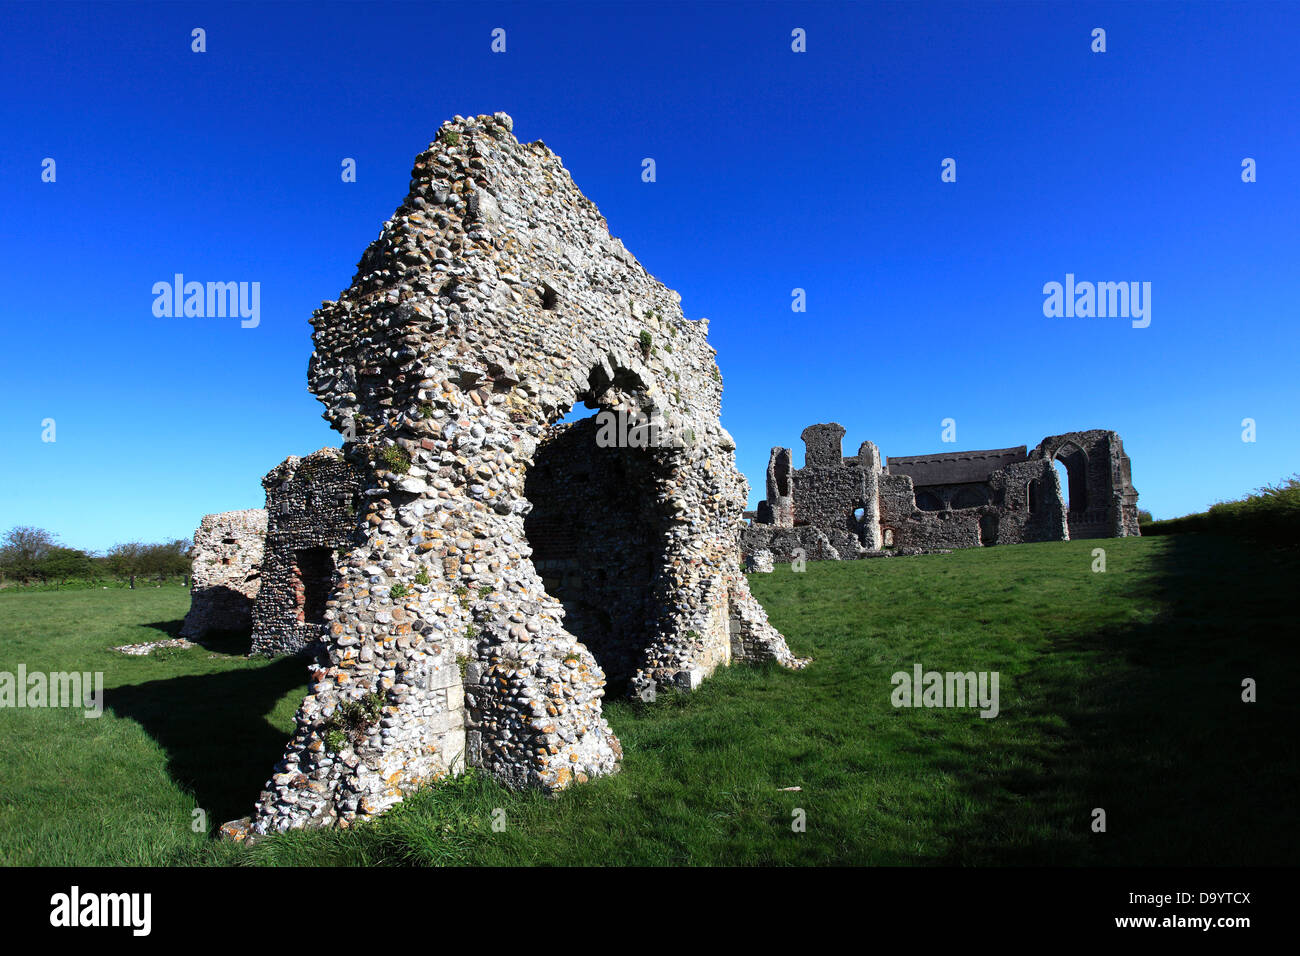 The ruins of Leiston Abbey near Aldeburgh in Suffolk County, England, Britain - Stock Image